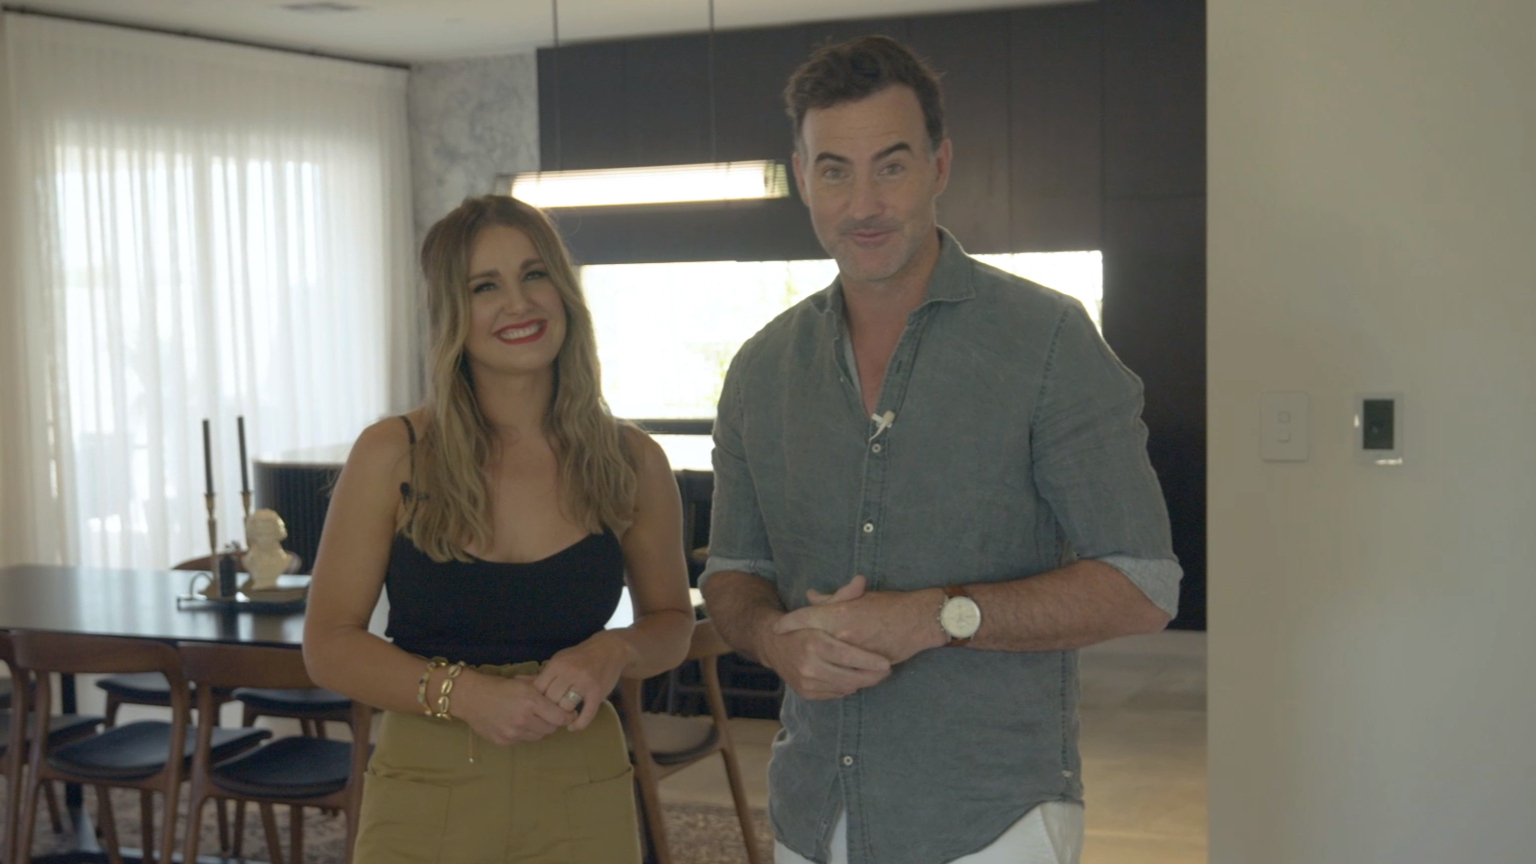 The Block's El'ise and Matt show off their kitchen renovation